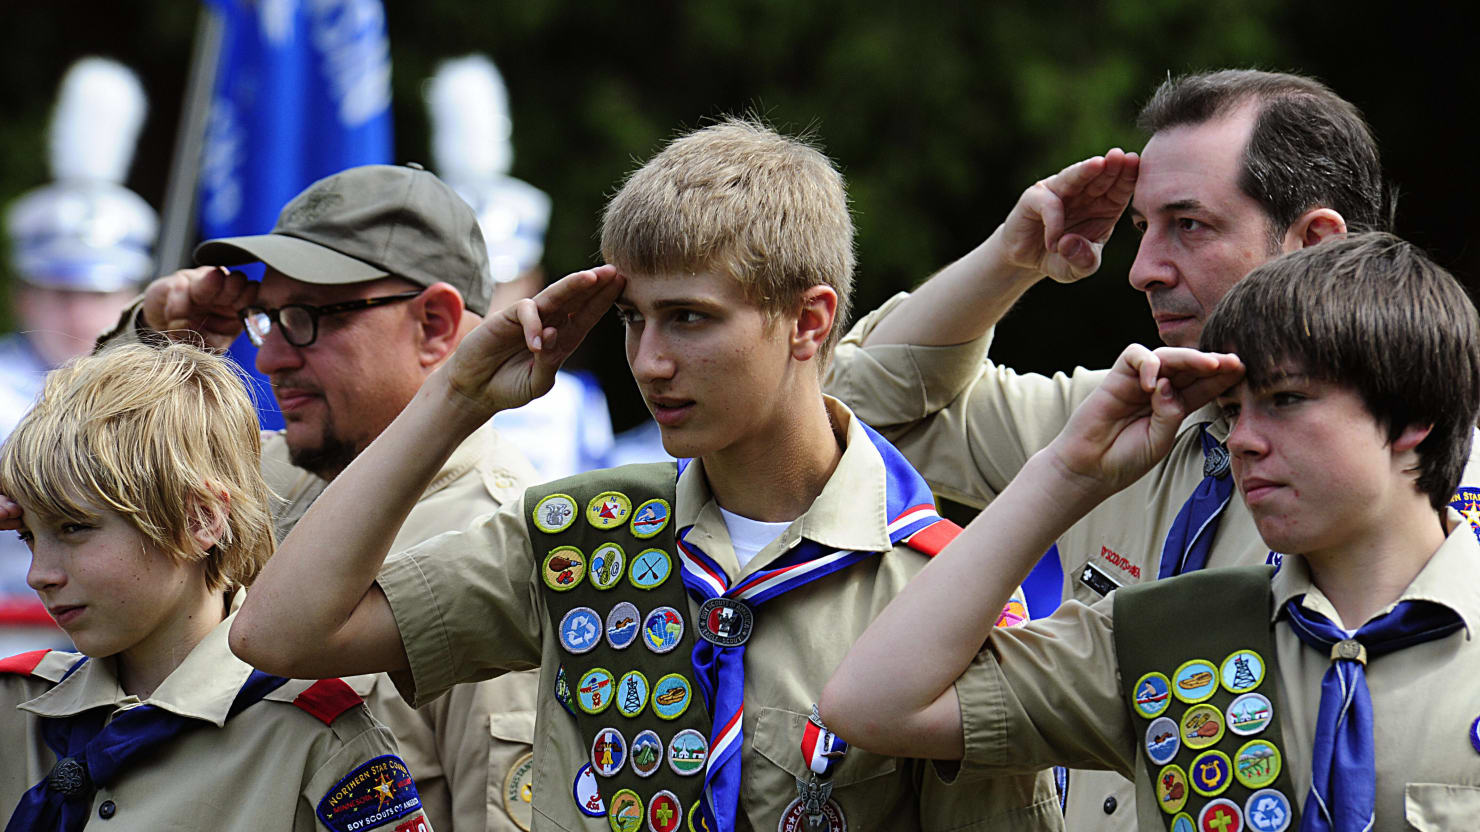 united way and the boy scouts of america essay The boys scouts of america is one of the founding organizations of the united way the boy scouts of america and united way have a long relationship many of the more than 1,400 local united way chapters support the bsa.